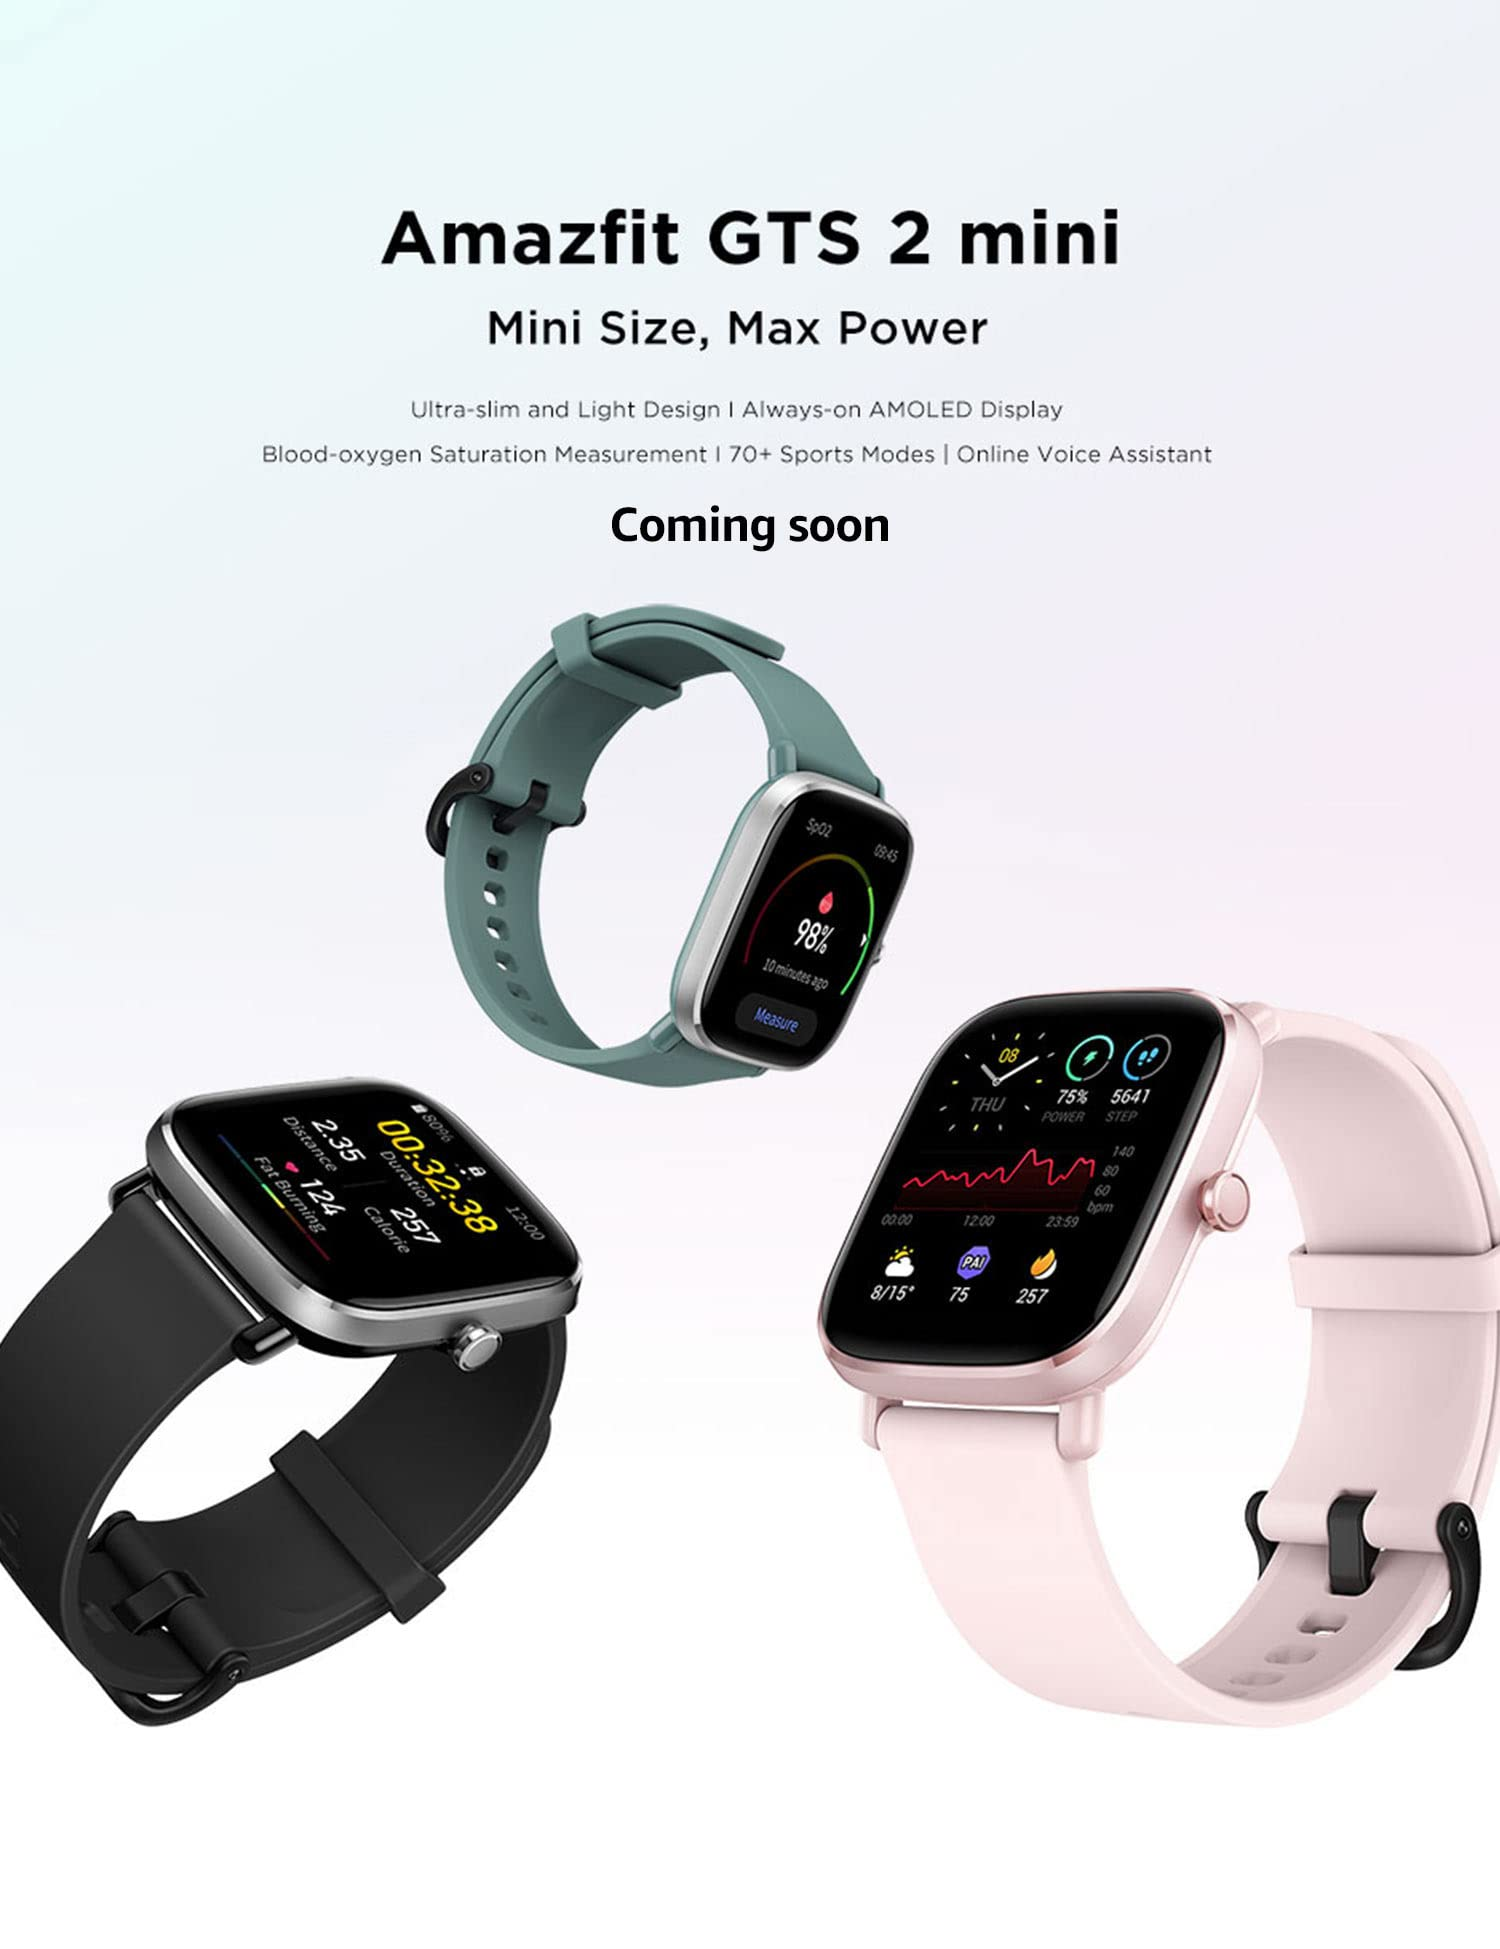 Amazfit GTS 2 Mini Best Features, Price, Specs Launching Soon